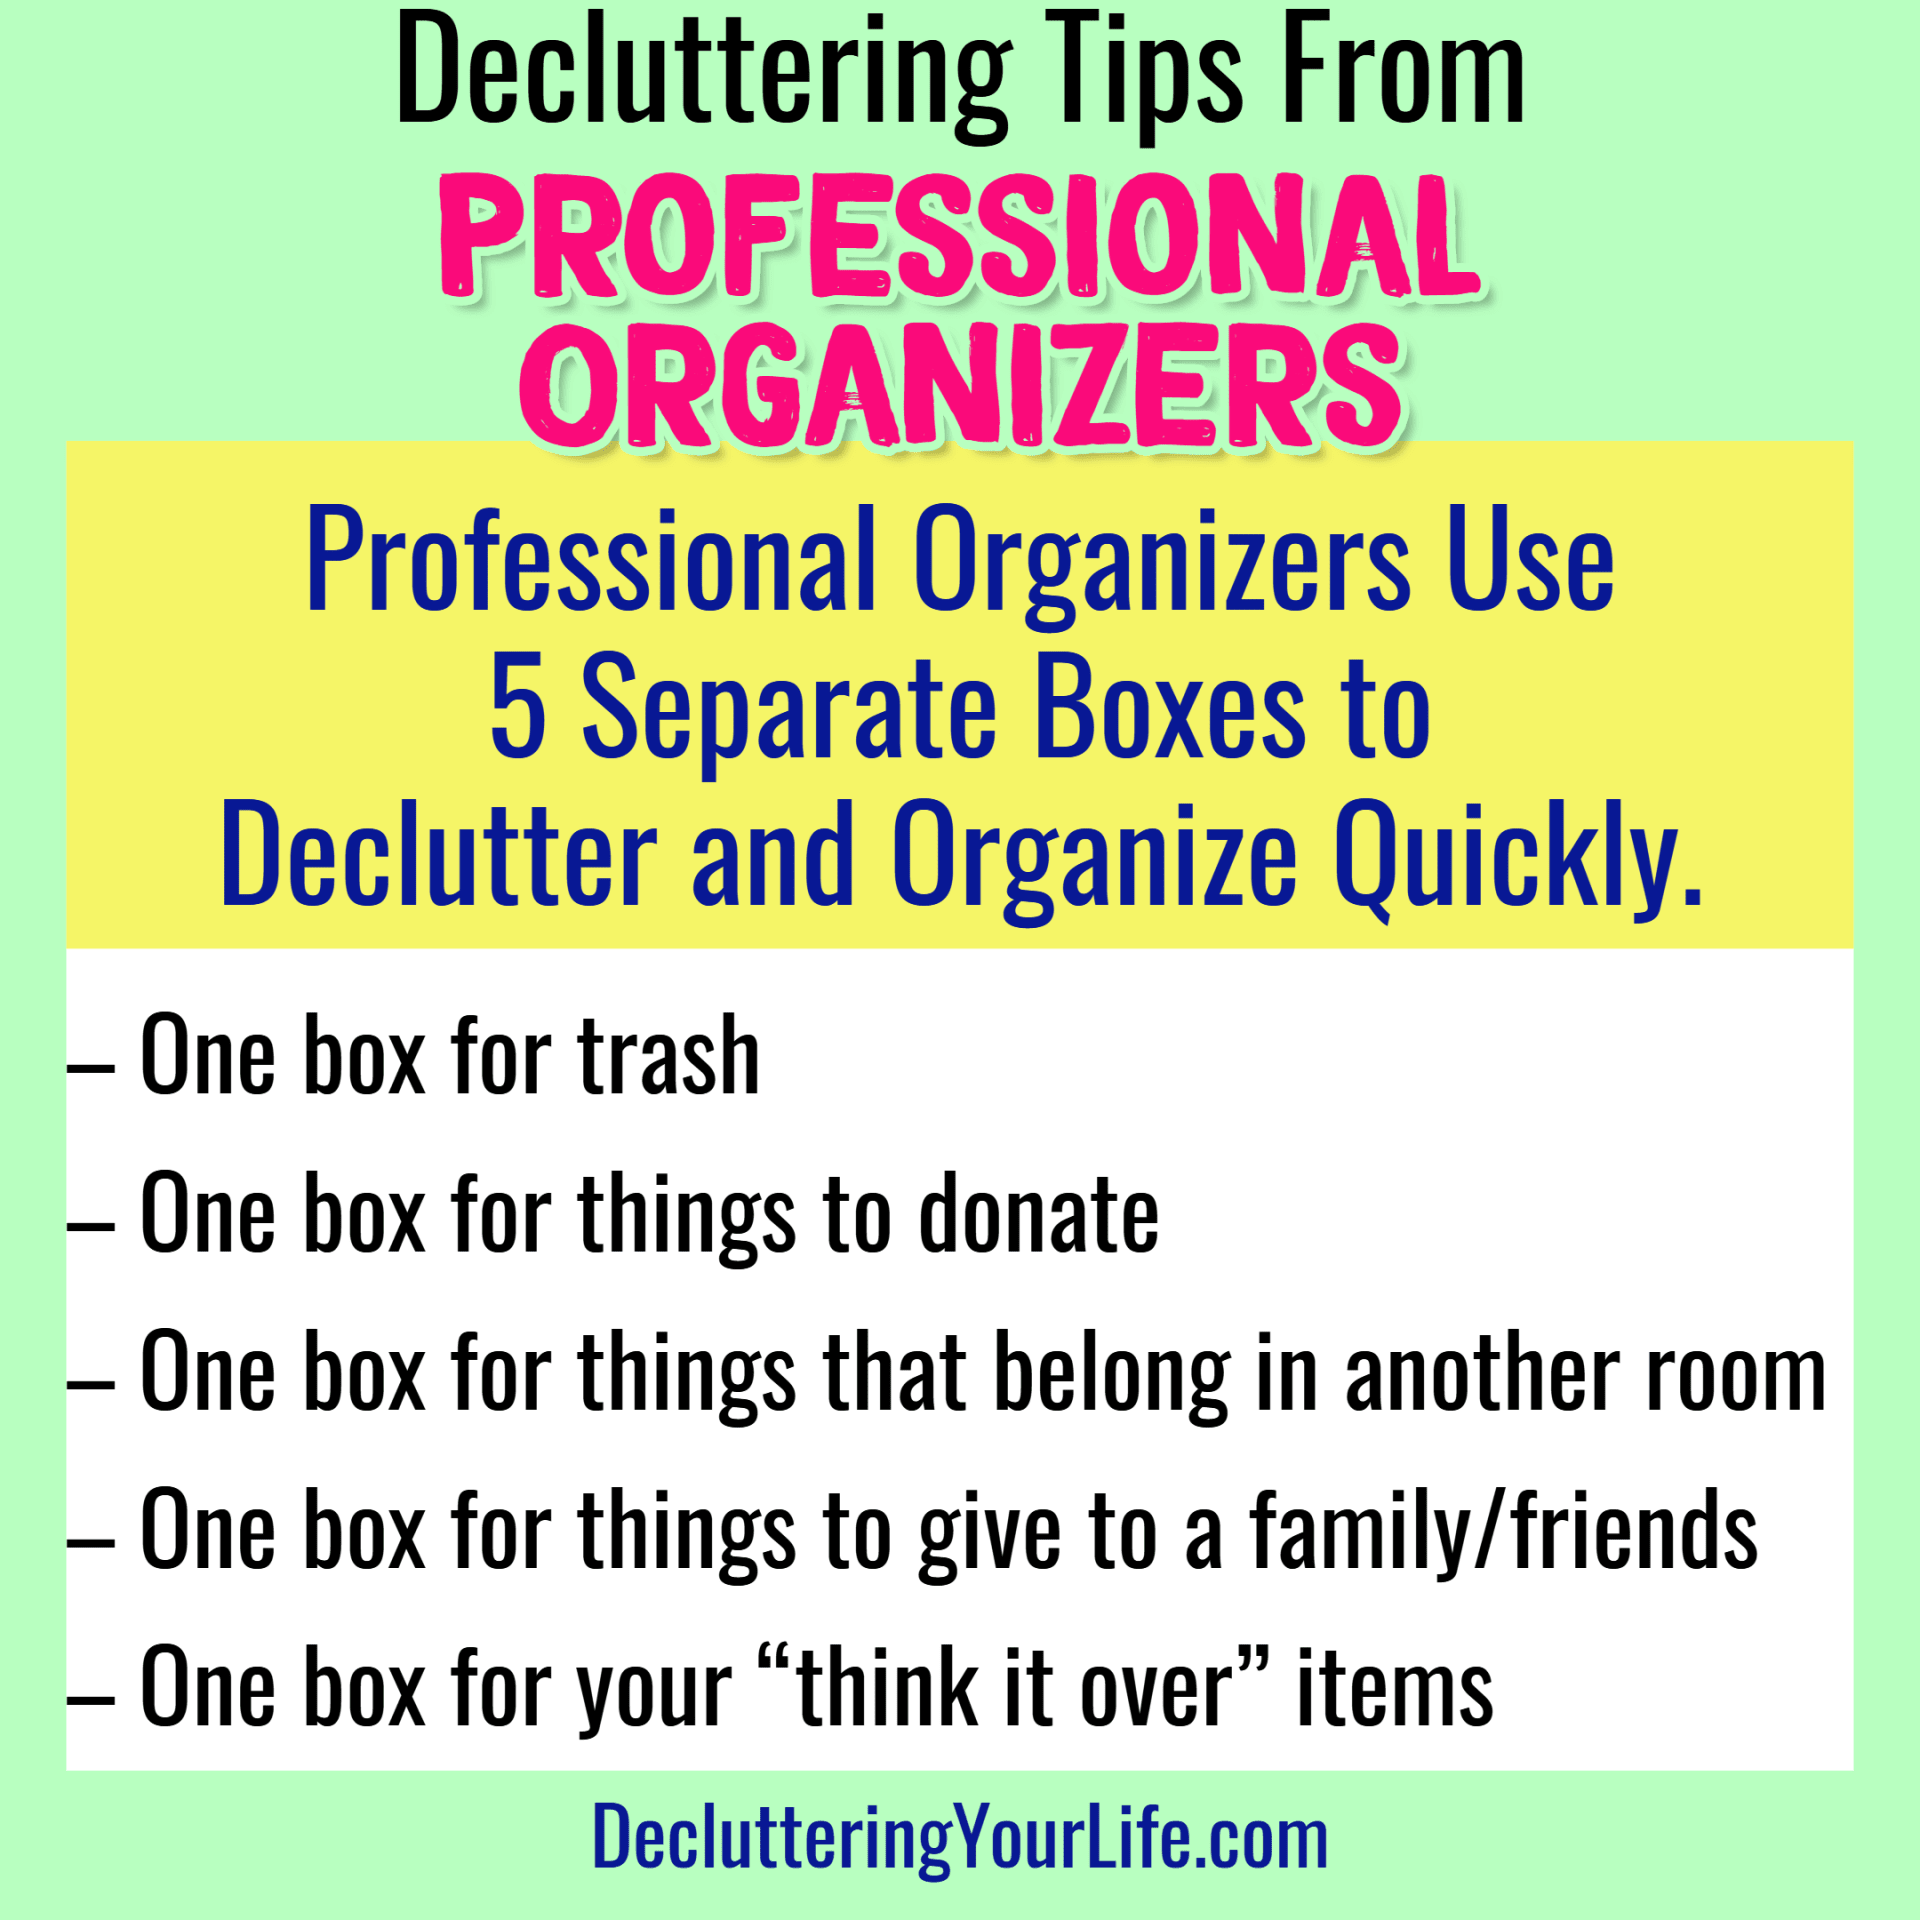 Tips from Professional Organizers - how to delutter and organize your home fast like a Professional Organizer